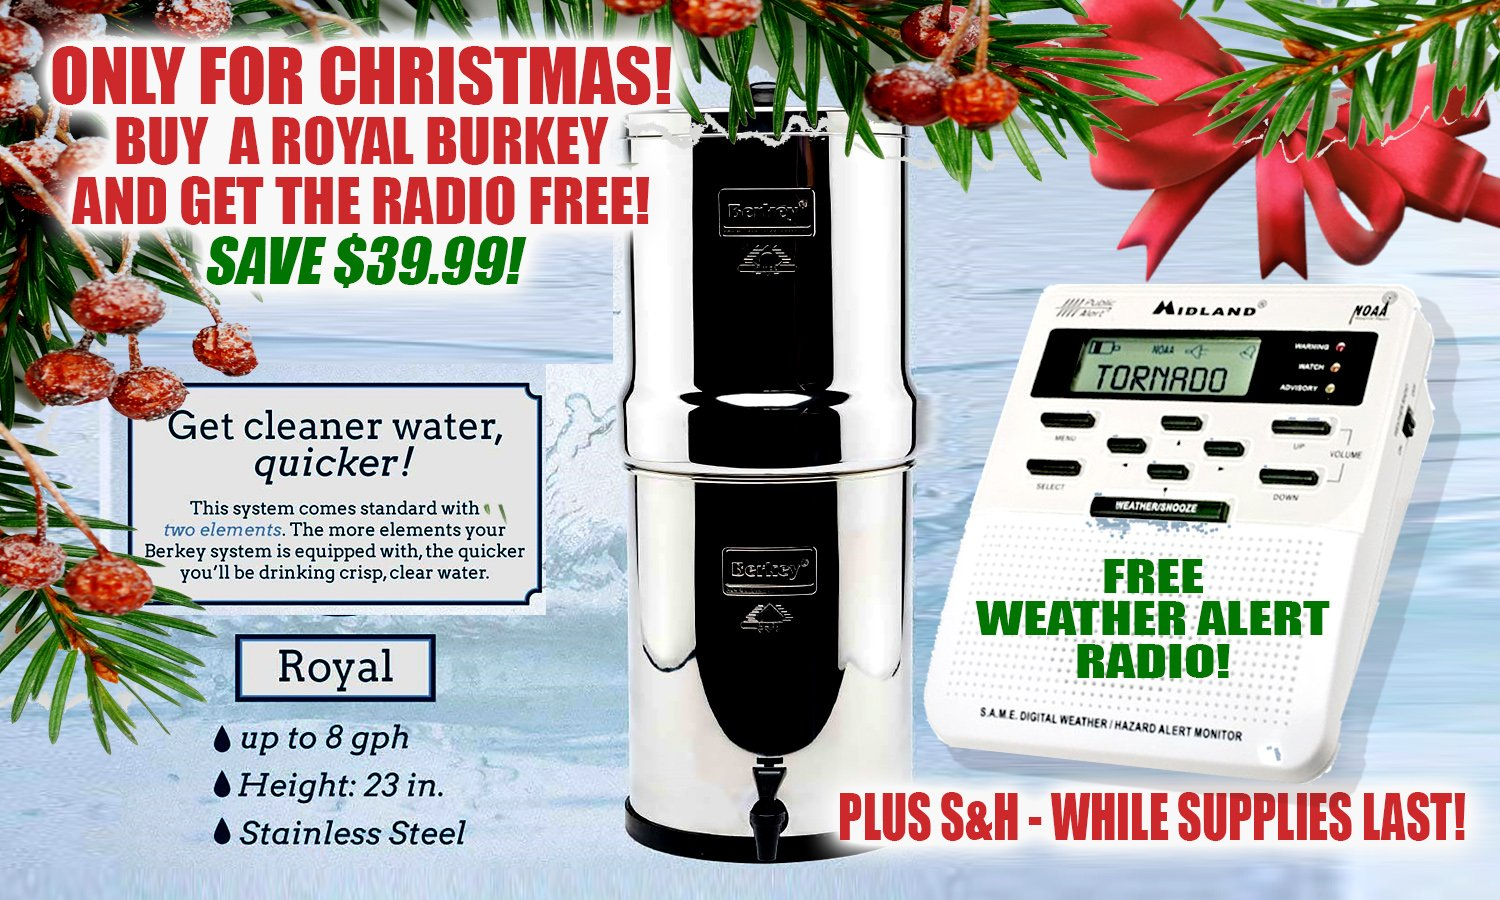 royal-burkey-and-radio-christmas-special